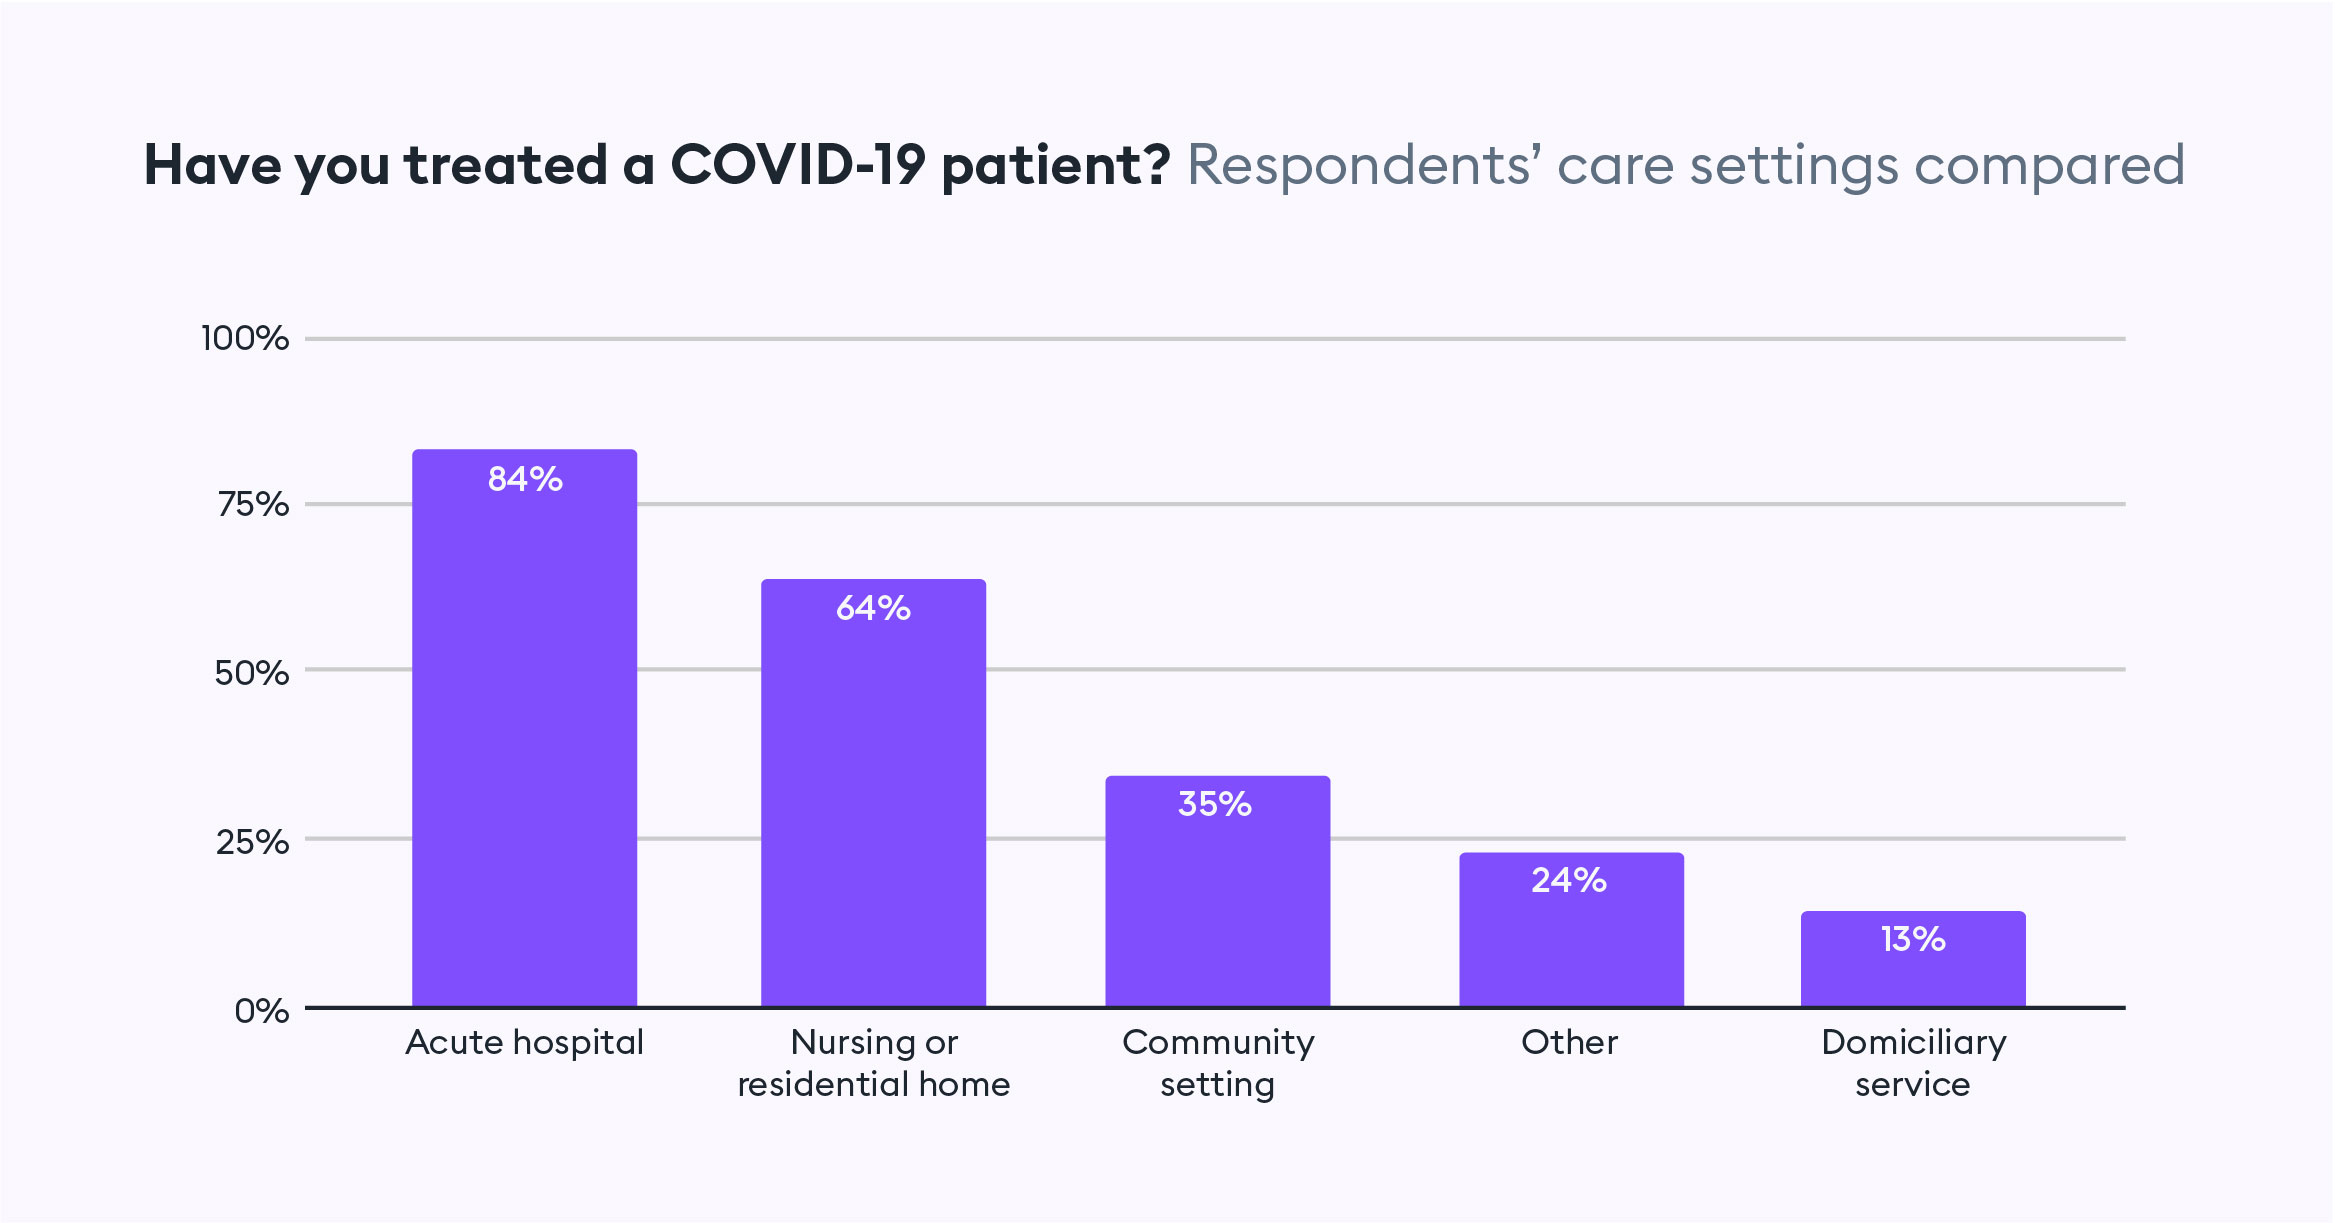 Have you treated a COVID patient?